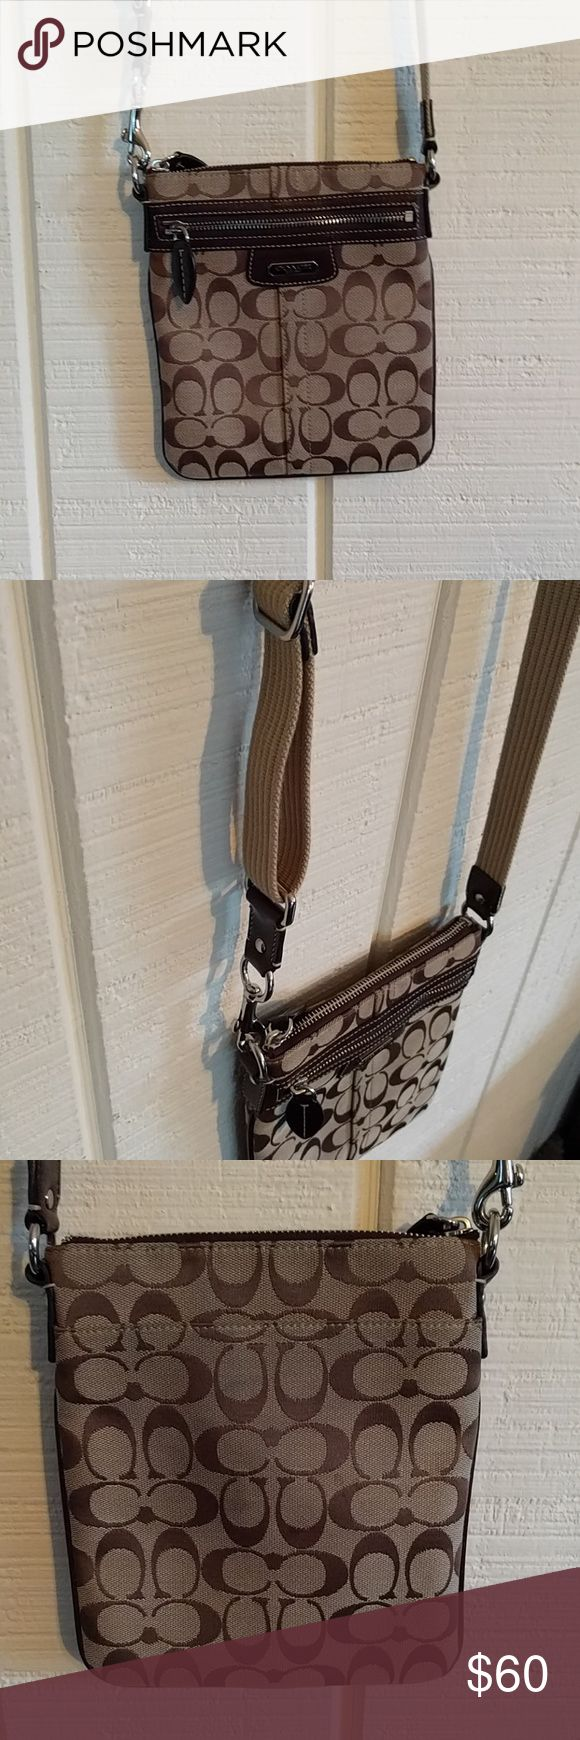 EUC Coach crossbody bag Coach crossbody bag! In great condition, minimal if any signs of wear. Clean interior. Cute leaf details on zippers. Cleaning out my closet to move. Will be closing closet soon due to moving/busy schedule so open to offers! Coach Bags Crossbody Bags